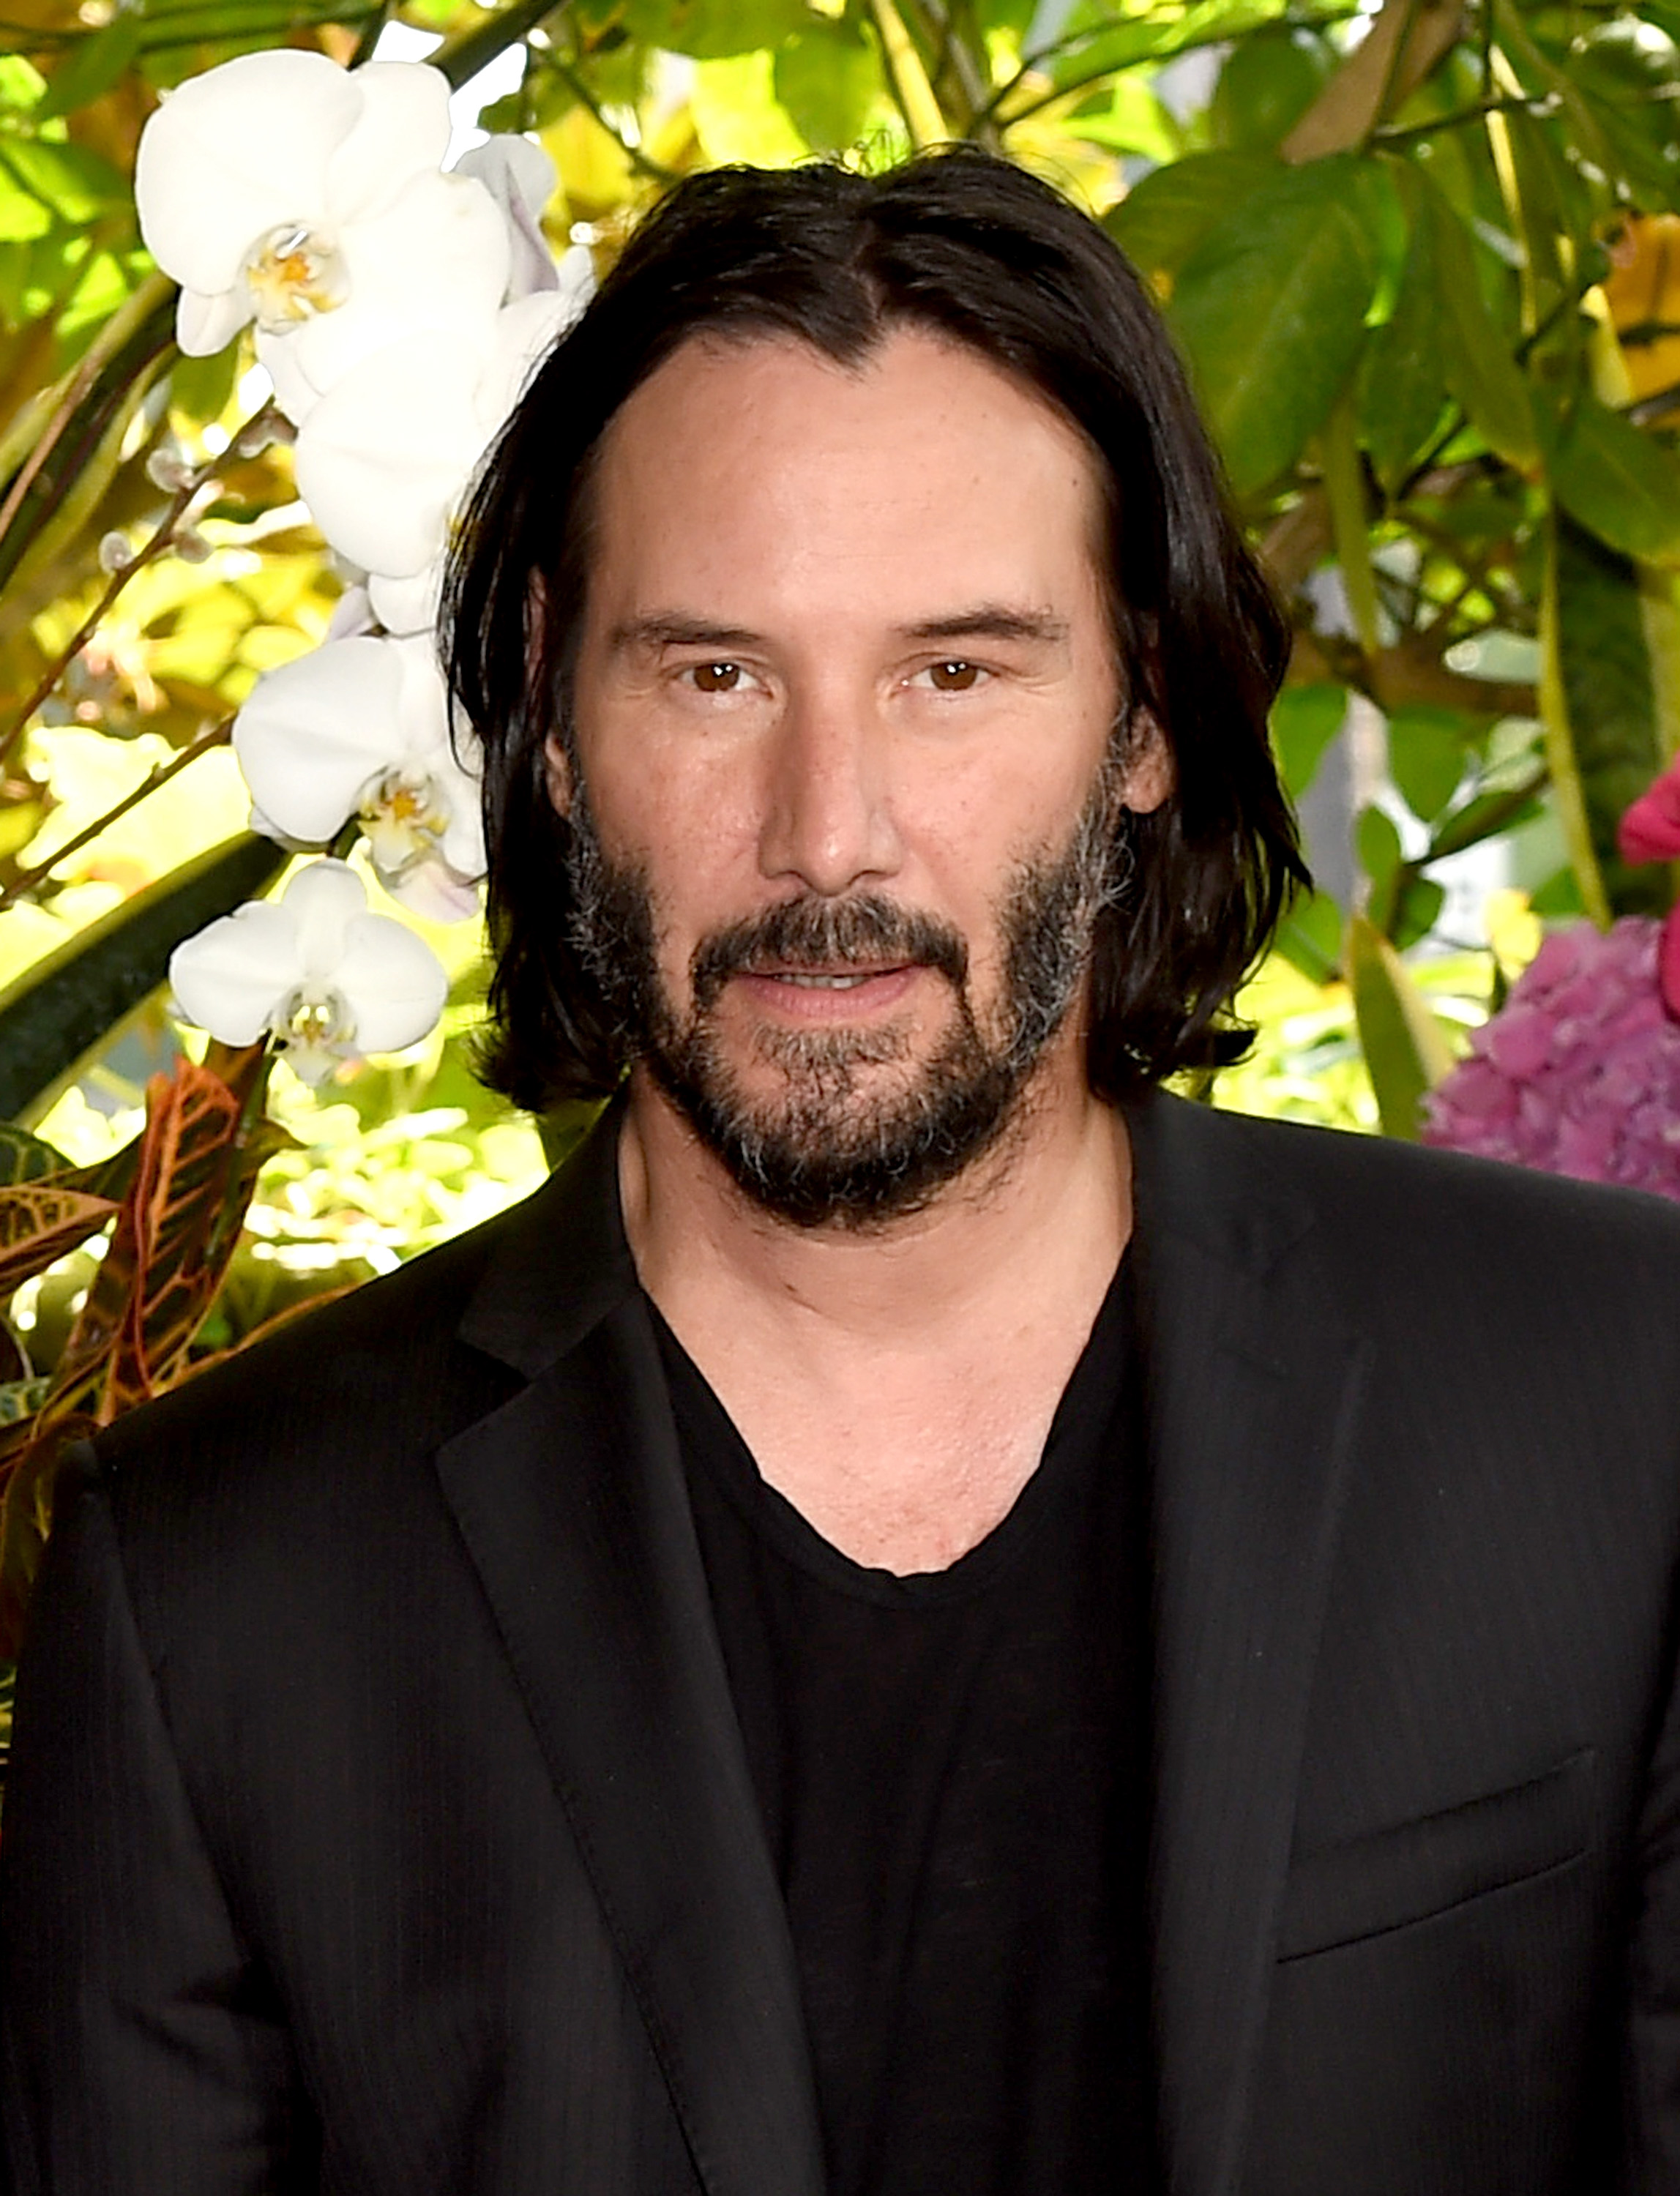 """Keanu Reeves attends a photo call for Regatta's """"Destination Wedding"""" at the Four Seasons Hotel Los Angeles at Beverly Hills on August 18, 2018 in Los Angeles, California.  (Photo by Kevin Winter/Getty Images)"""